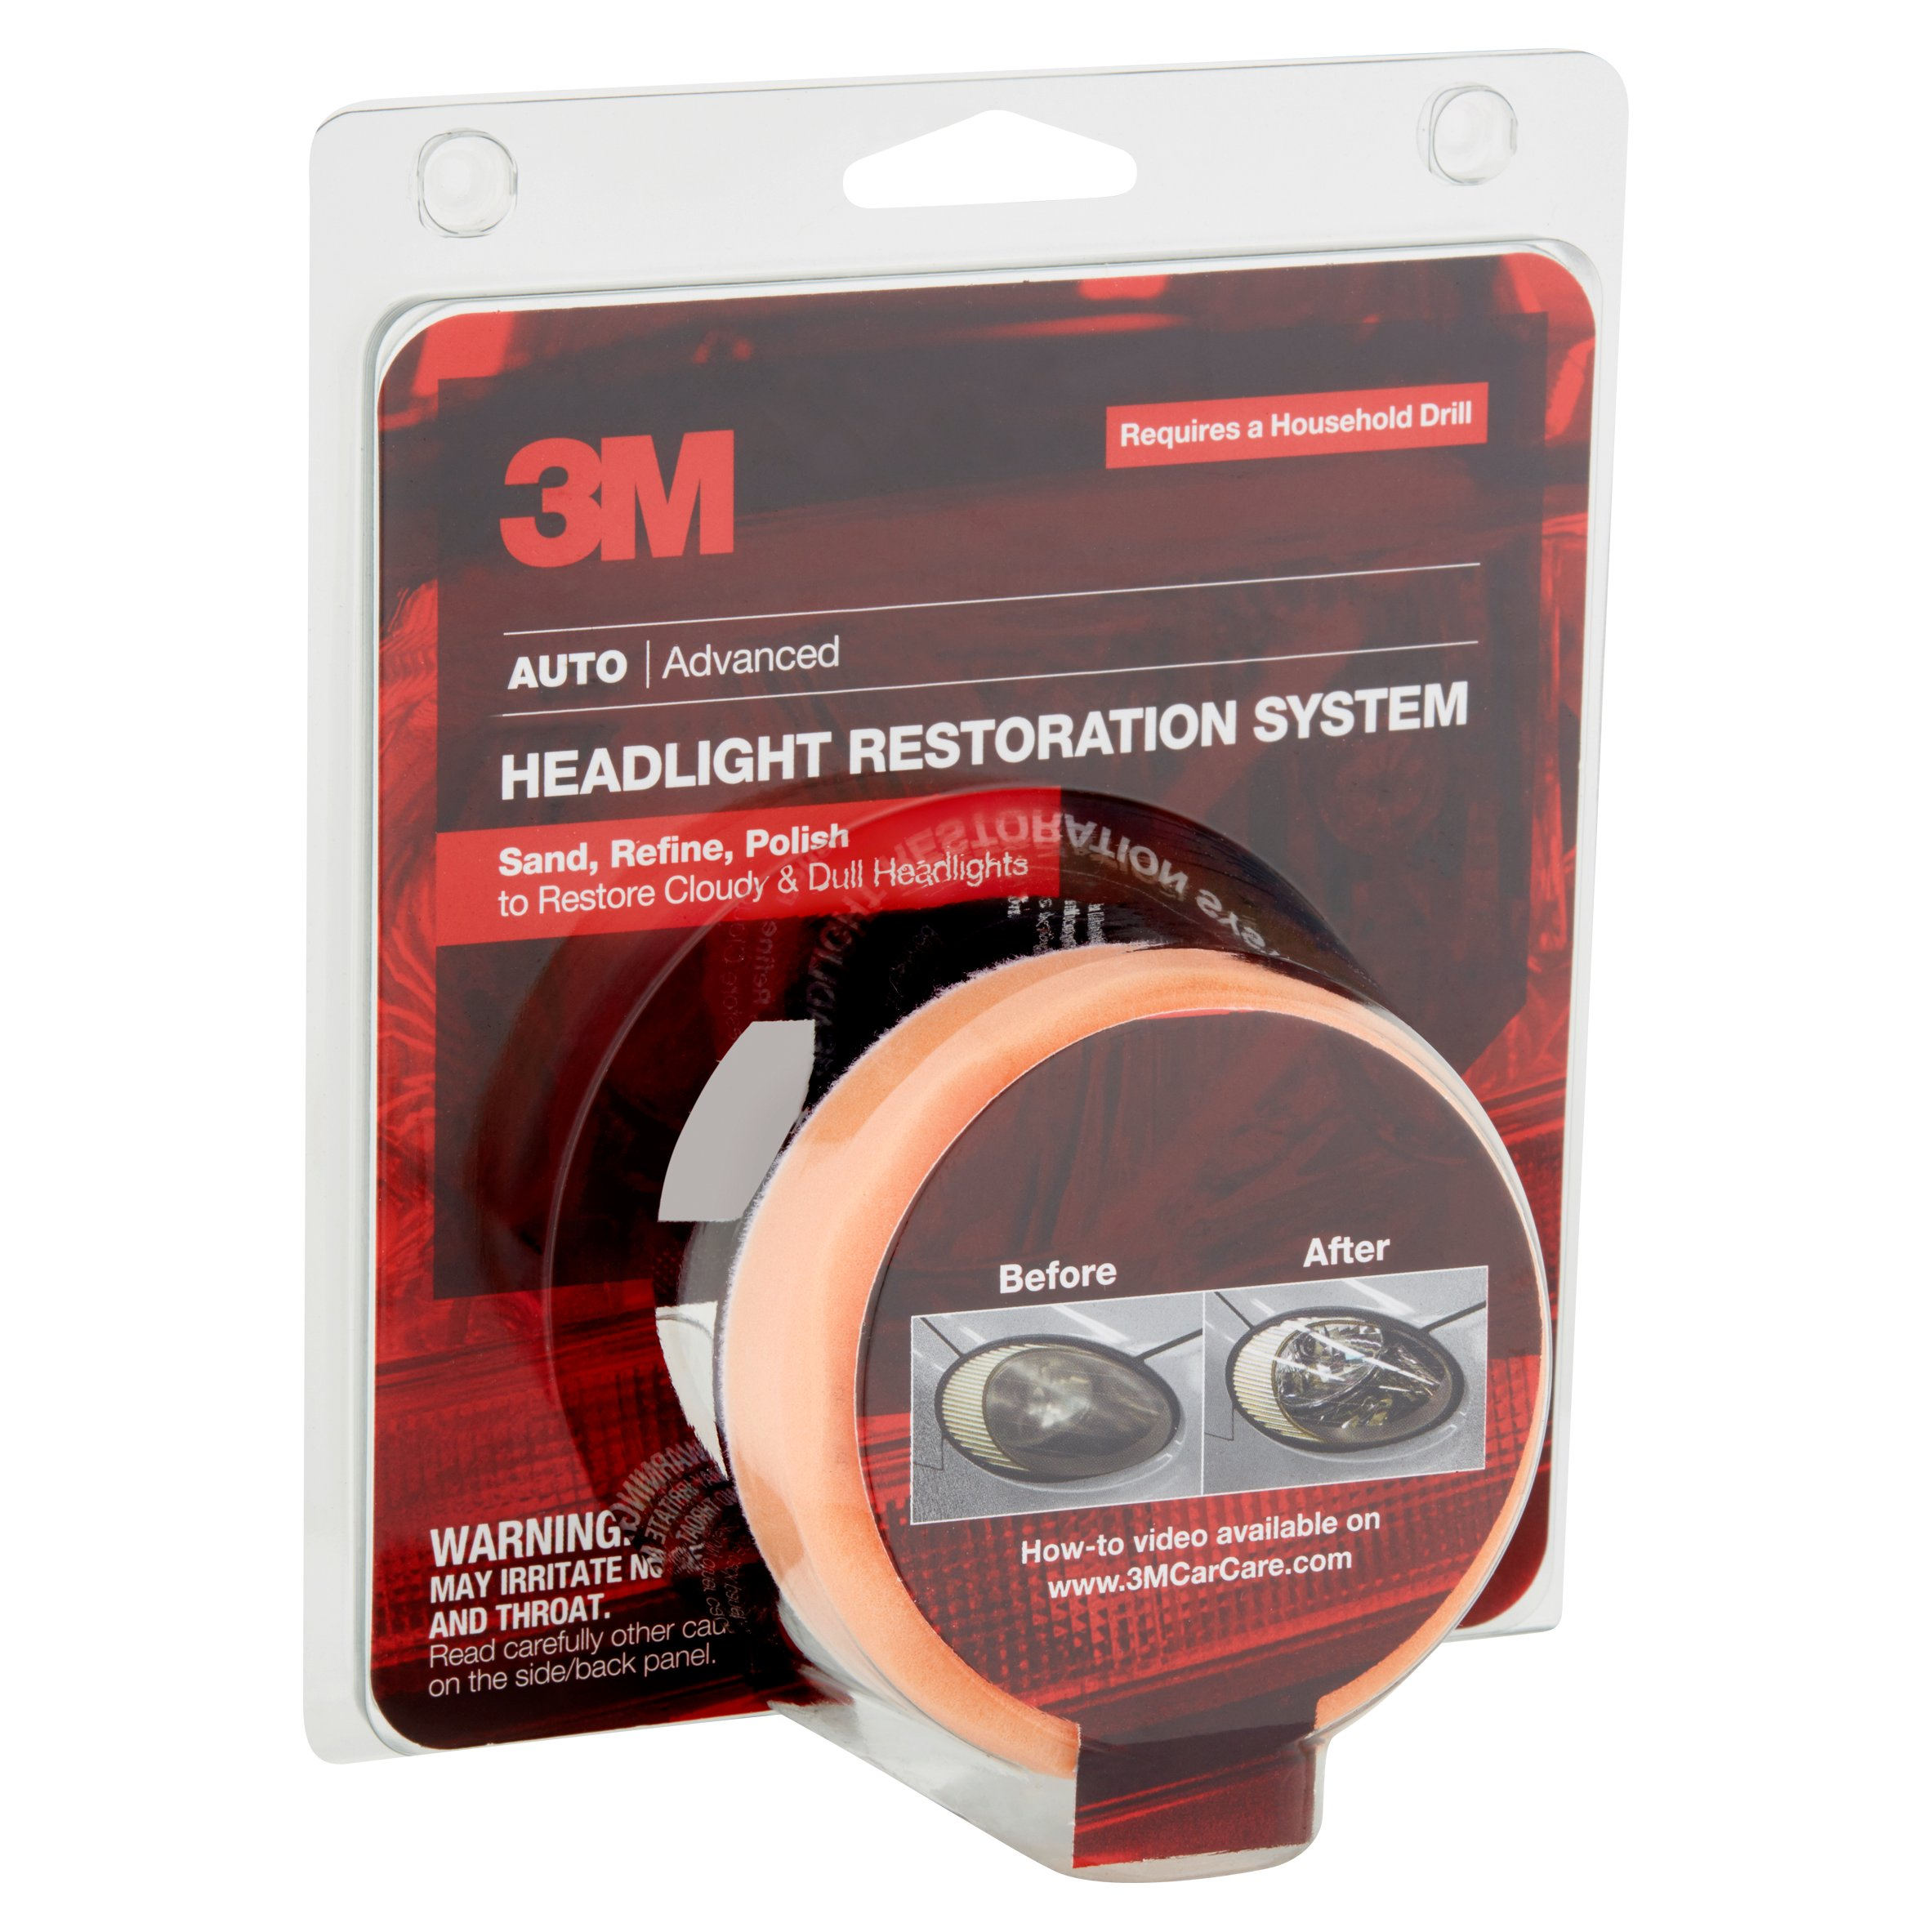 3M Auto Advanced Headlight Restoration System ONLY $9.40 (reg $18.40)